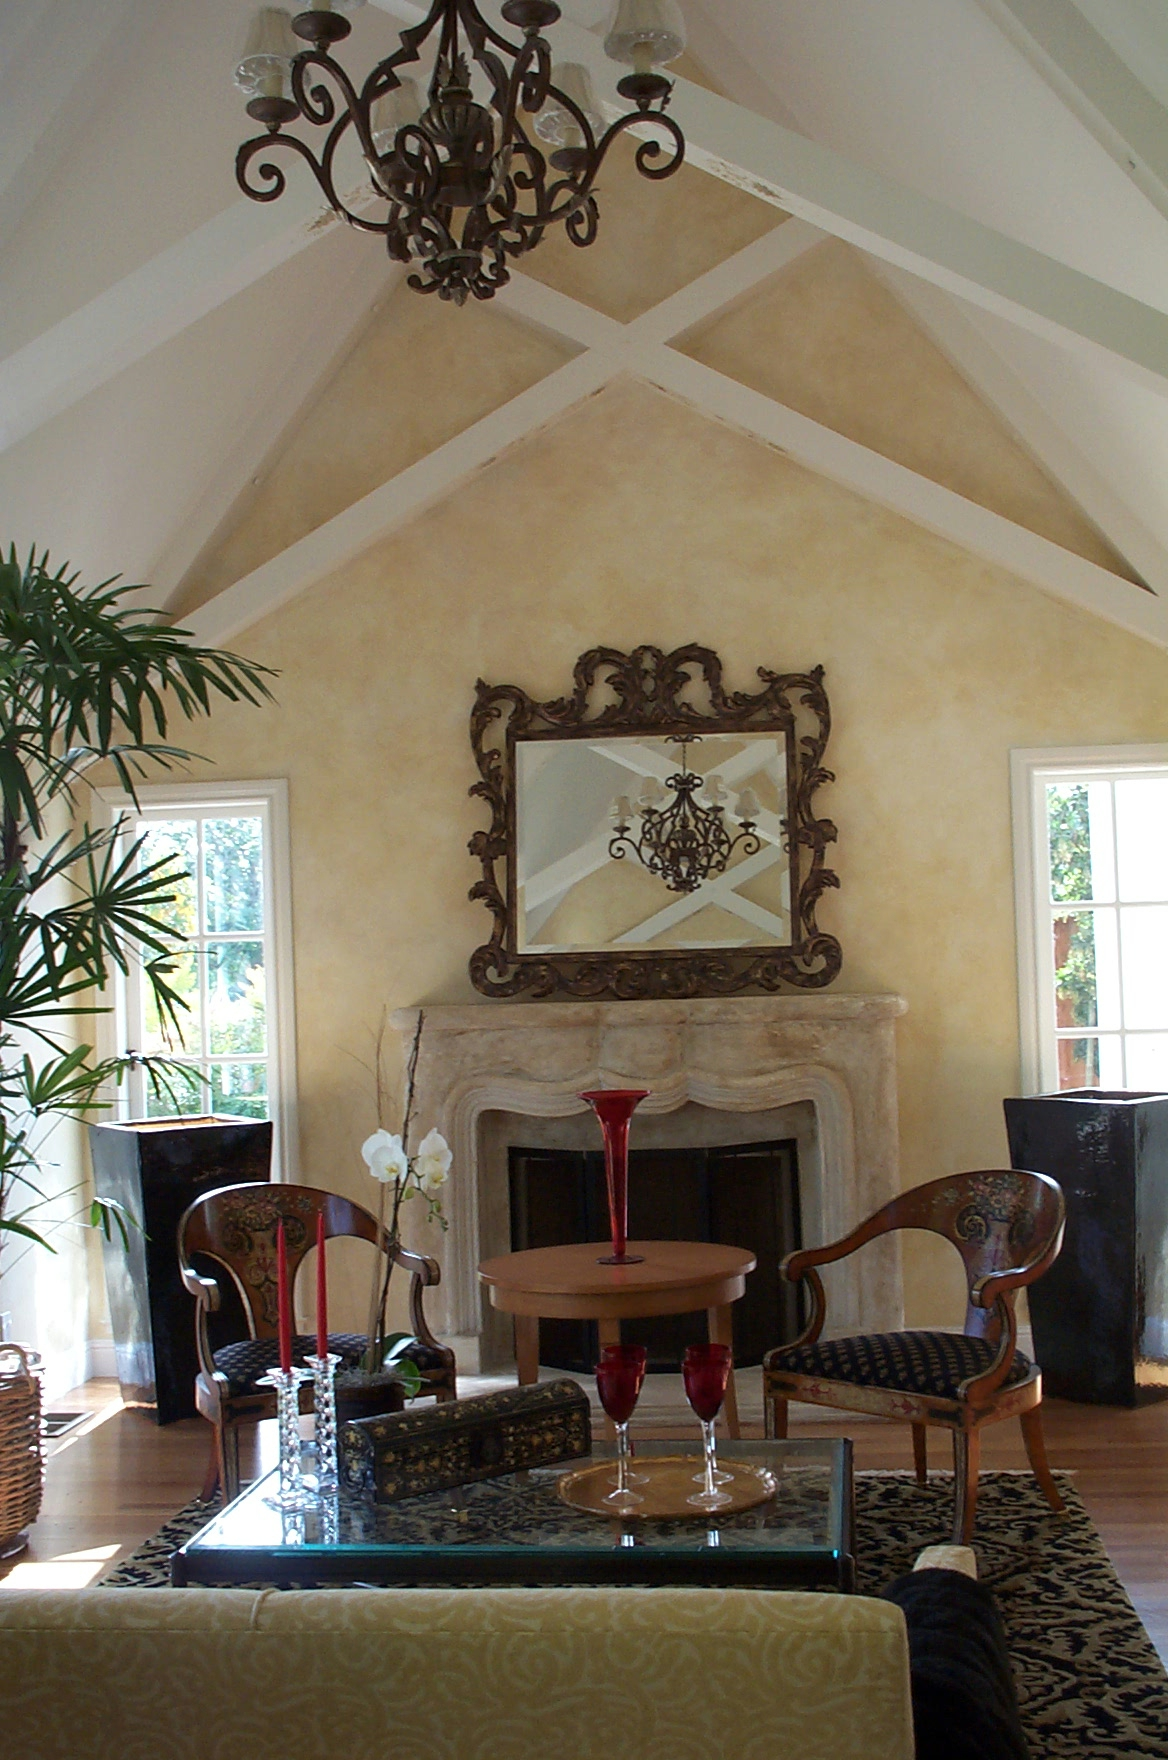 Vaulted Ceilings & Fireplace